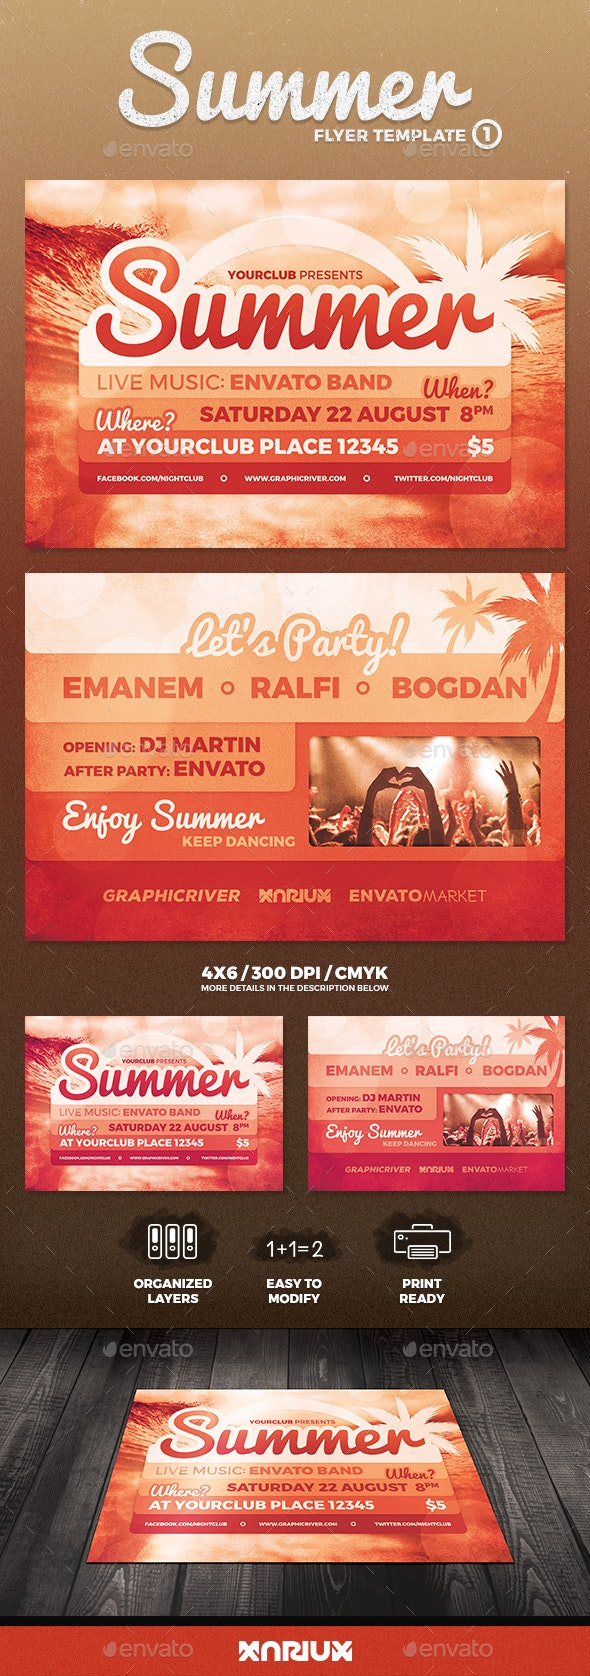 Summer Flyer 1 - Clubs & Parties Events